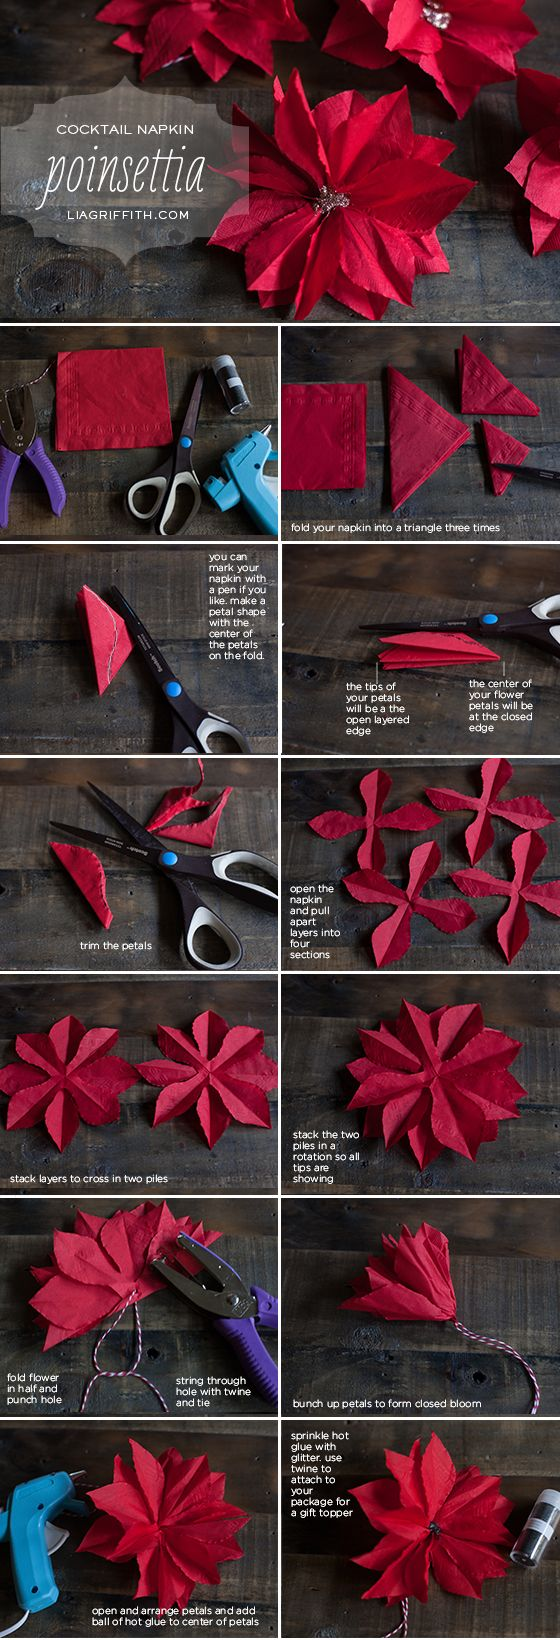 Paper Poinsettia Tutorial - by Lia Griffith -- http://liagriffith.com/make-a-paper-poinsettia-from-a-cocktail-napkin/